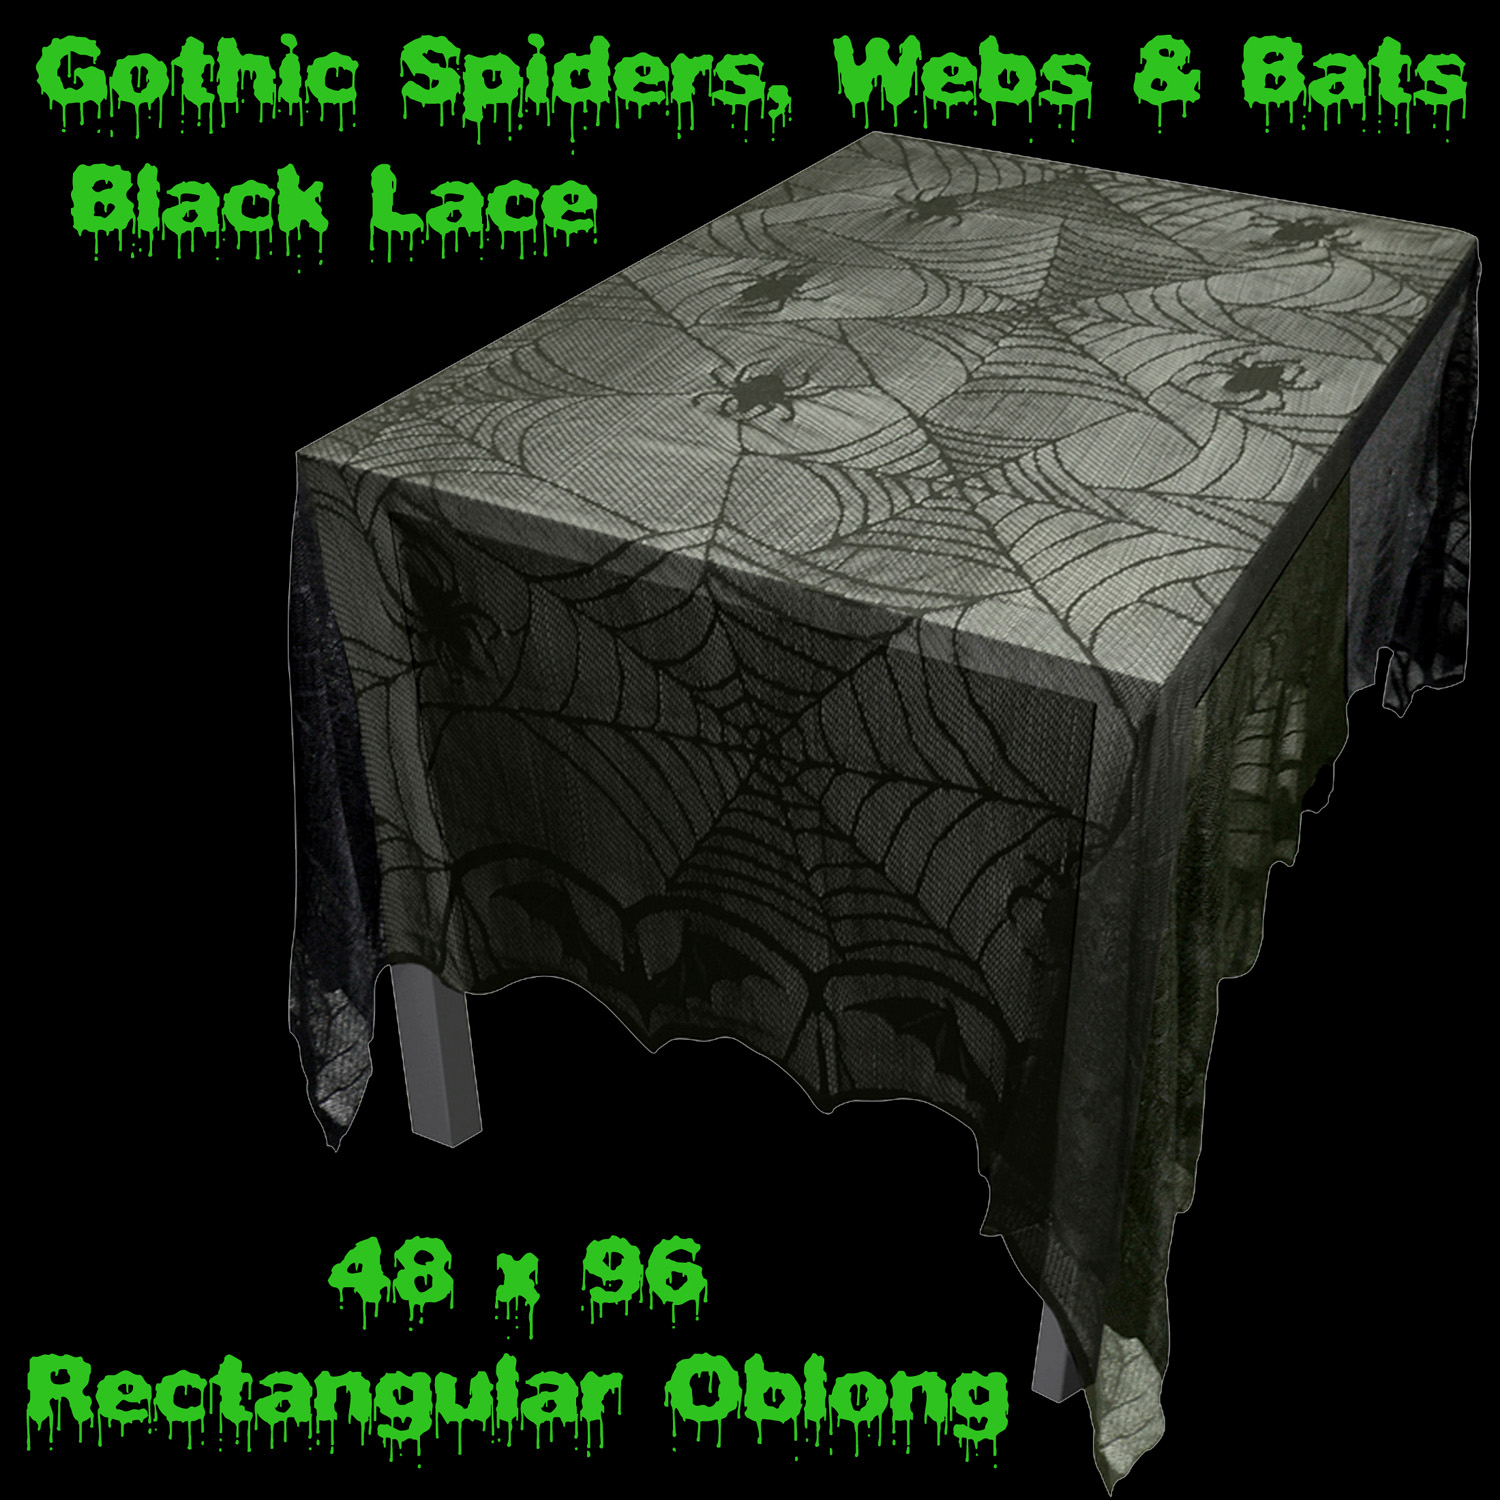 Elegant Gothic Haunted House Black Bat SPIDER WEB LACE TABLE CLOTH TOPPER  48 X 96